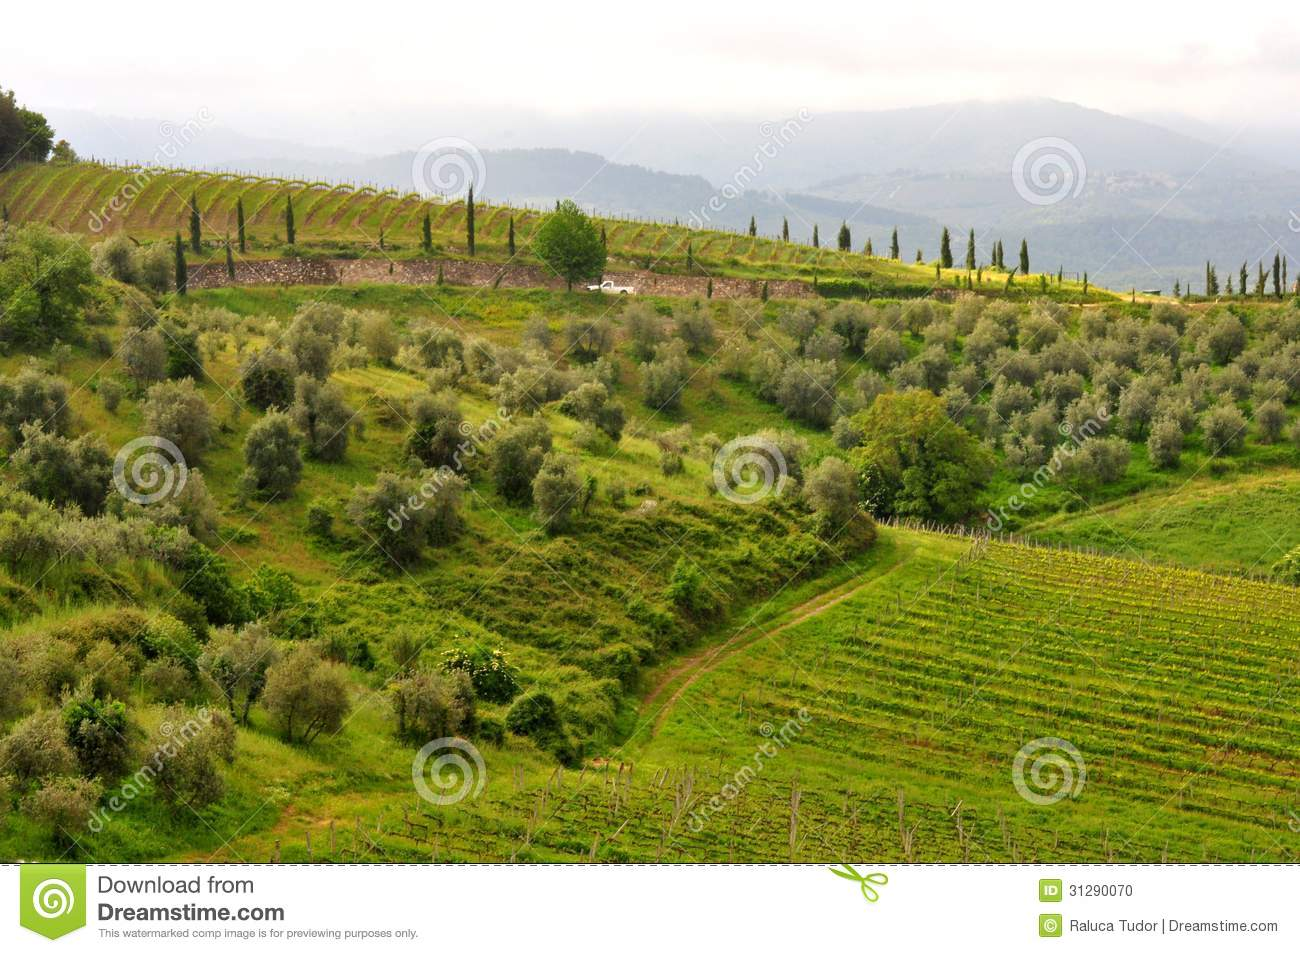 Olive trees and vineyards in tuscany italy stock photo for Green italy